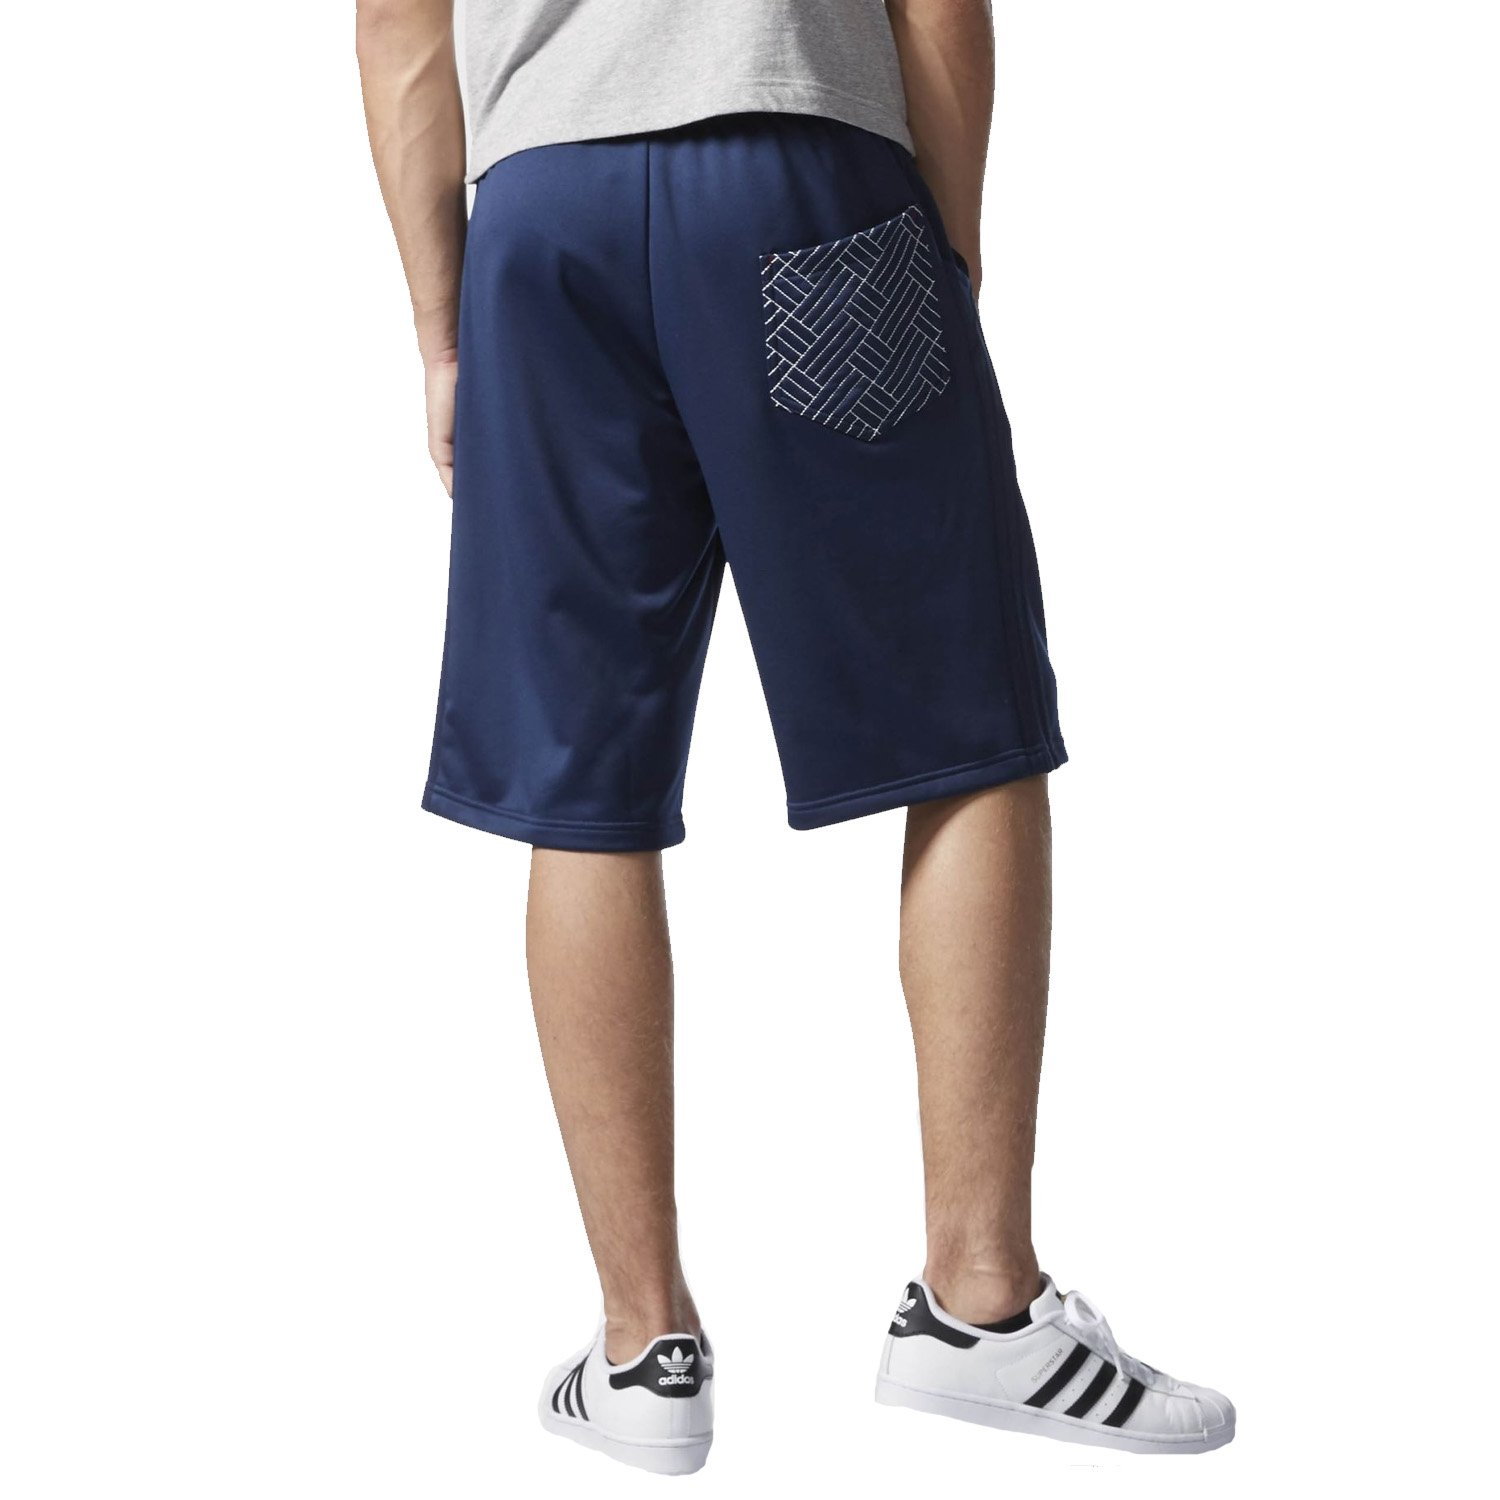 c44e889e1 adidas Originals Mens Budo Knee Length Shorts - Navy - Large: Amazon.co.uk:  Clothing